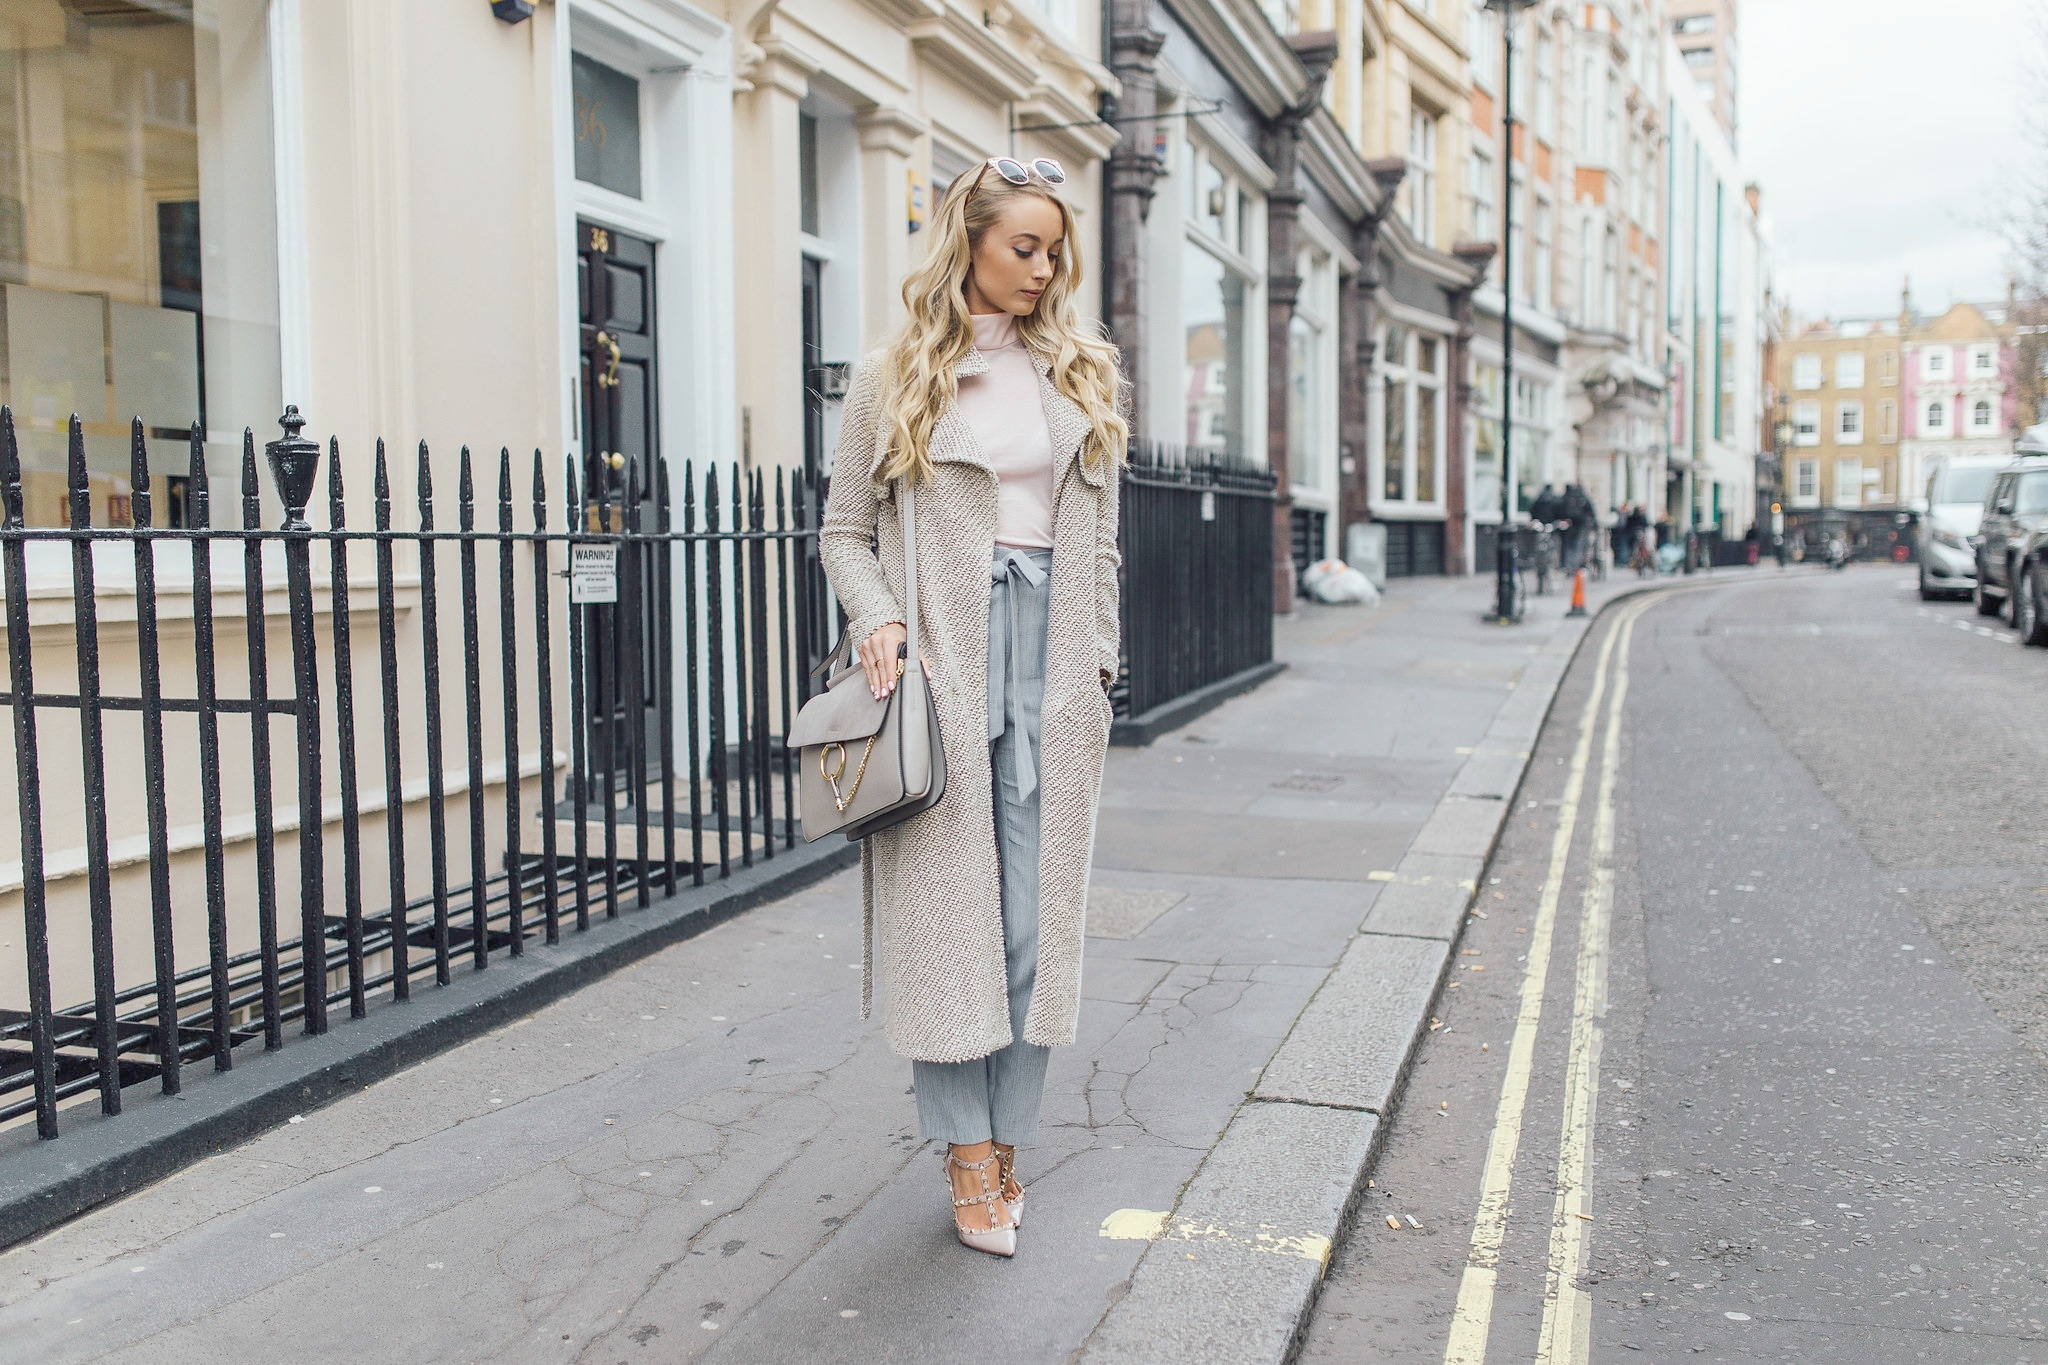 London Fashion Week Day One #ootd fashion mumblr 6